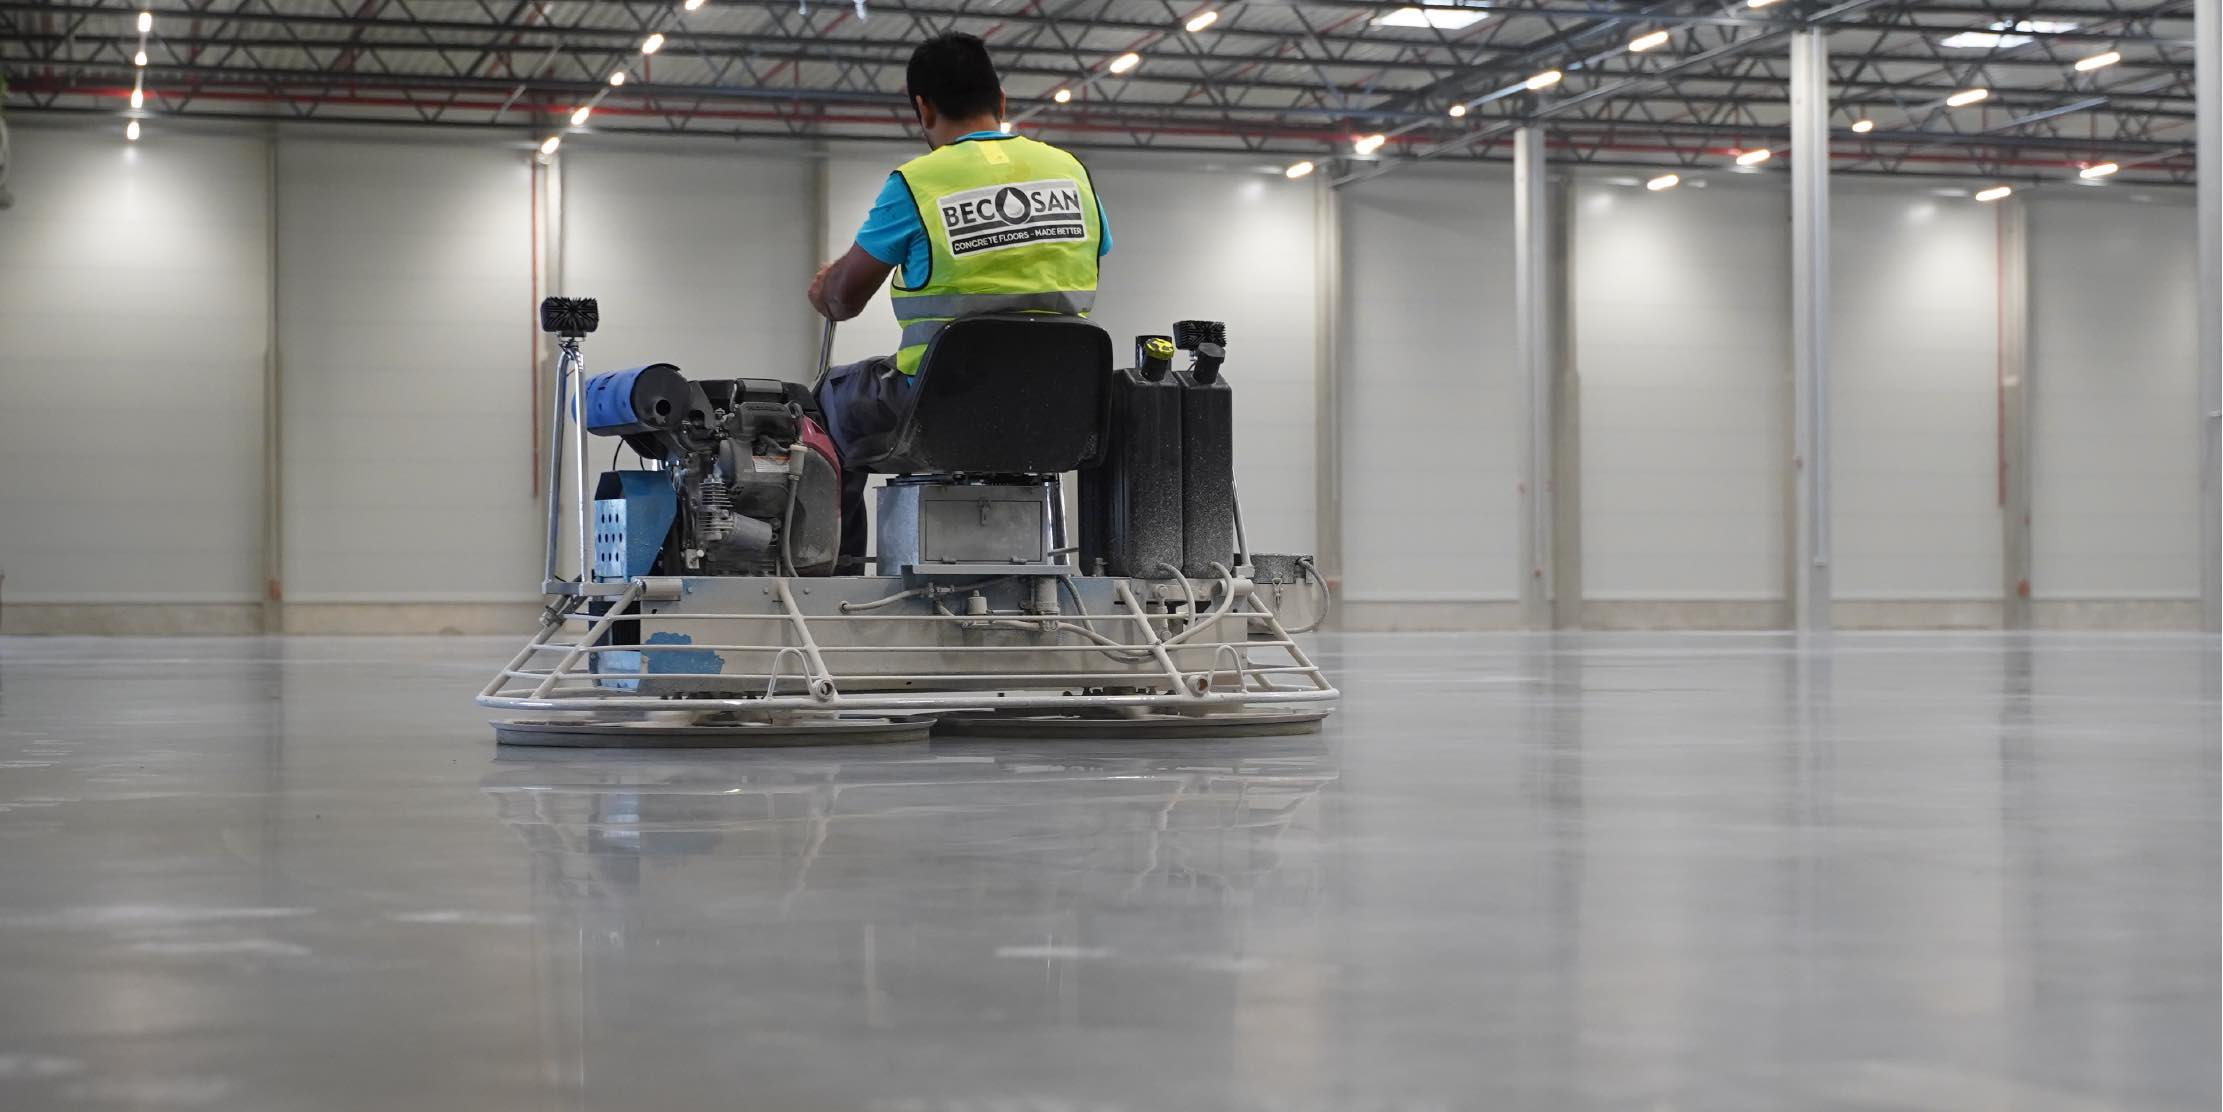 Concrete floors treated with BECOSAN®